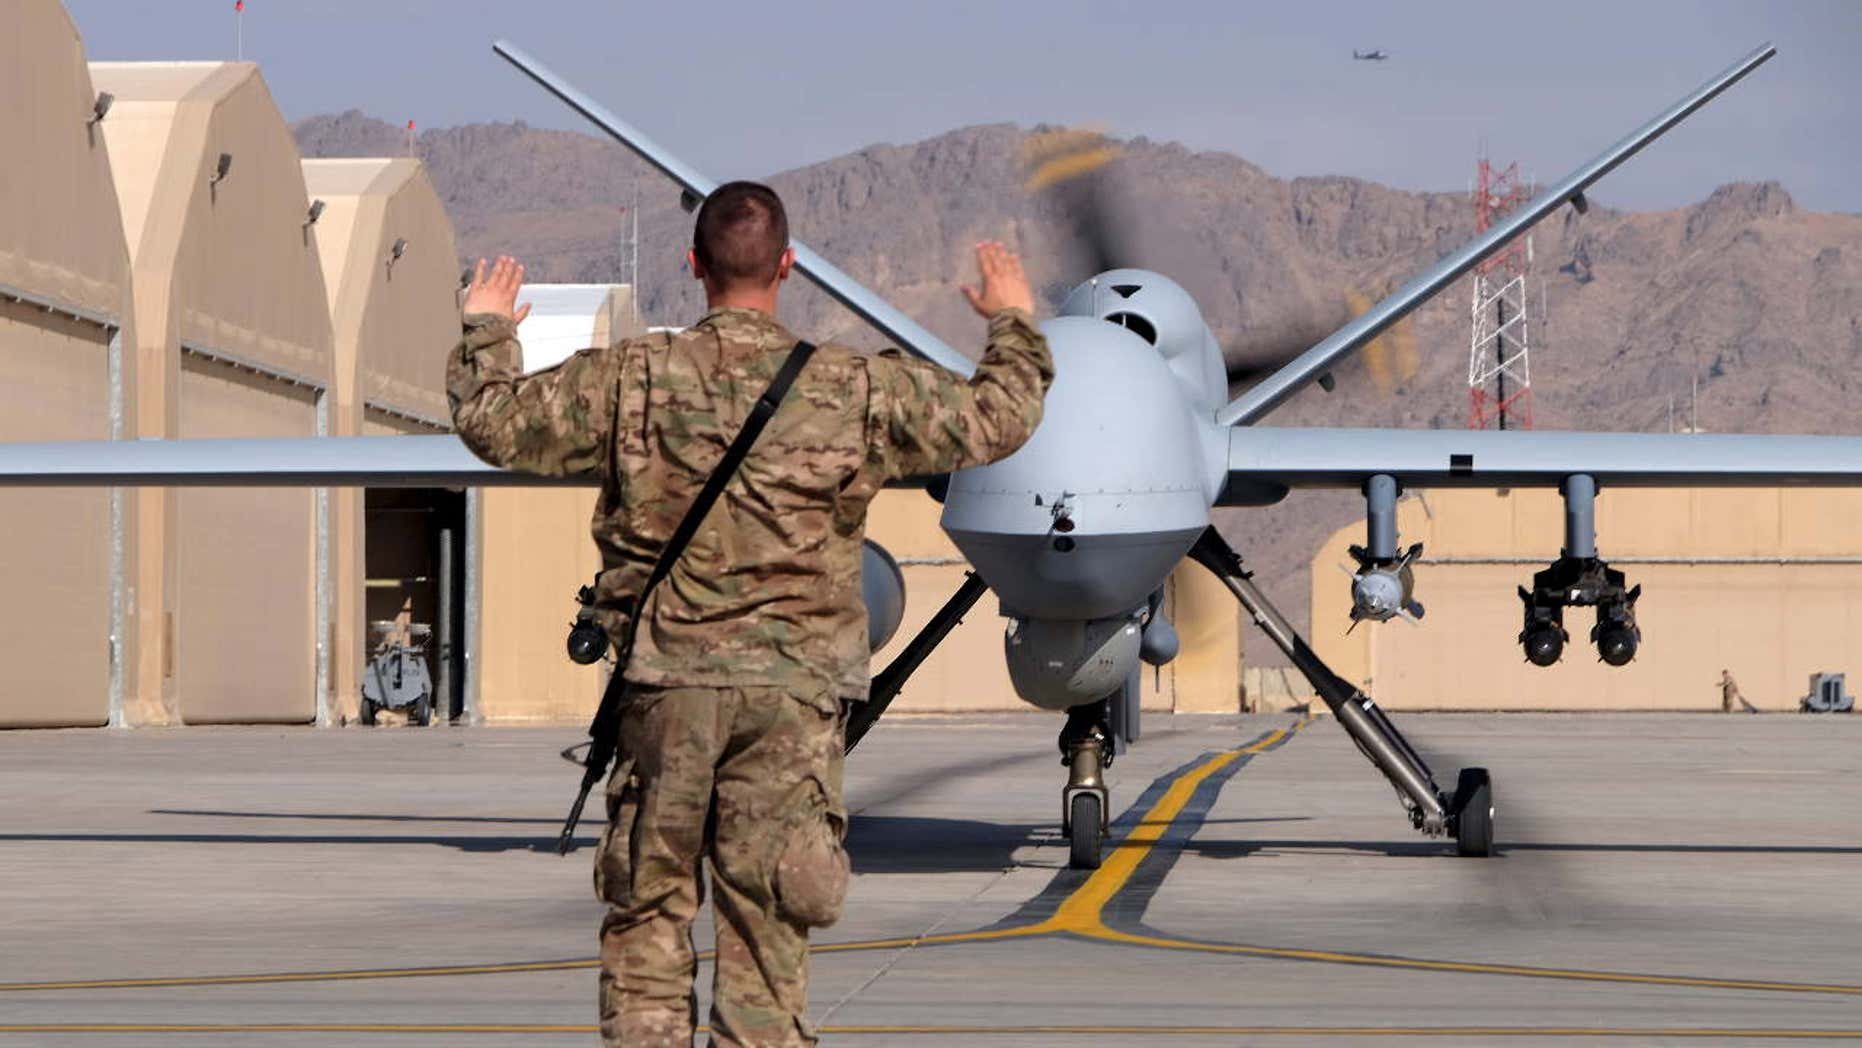 A U.S. airman guides a U.S. Air Force MQ-9 Reaper drone as it taxis to the runway at Kandahar Airfield